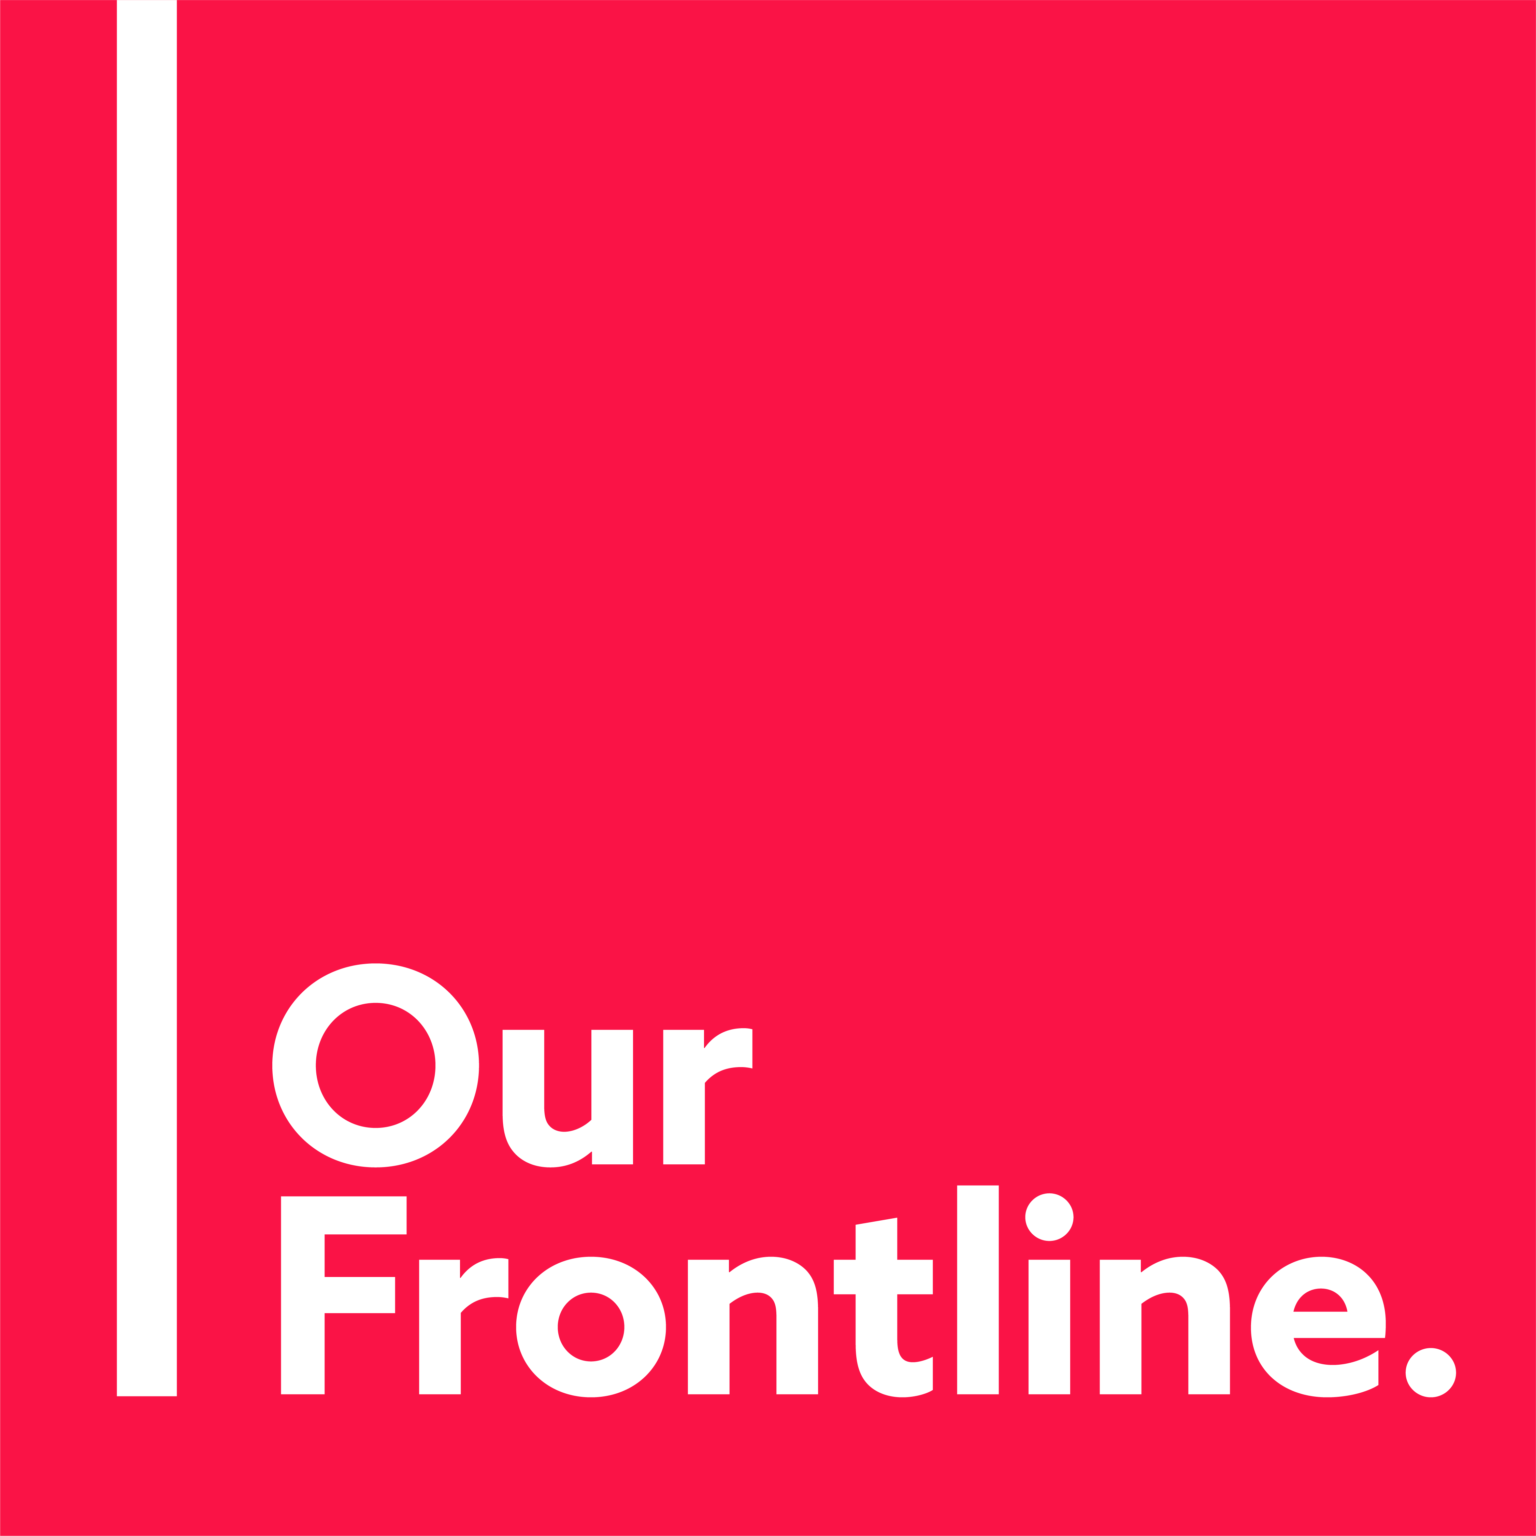 Our Frontline logo